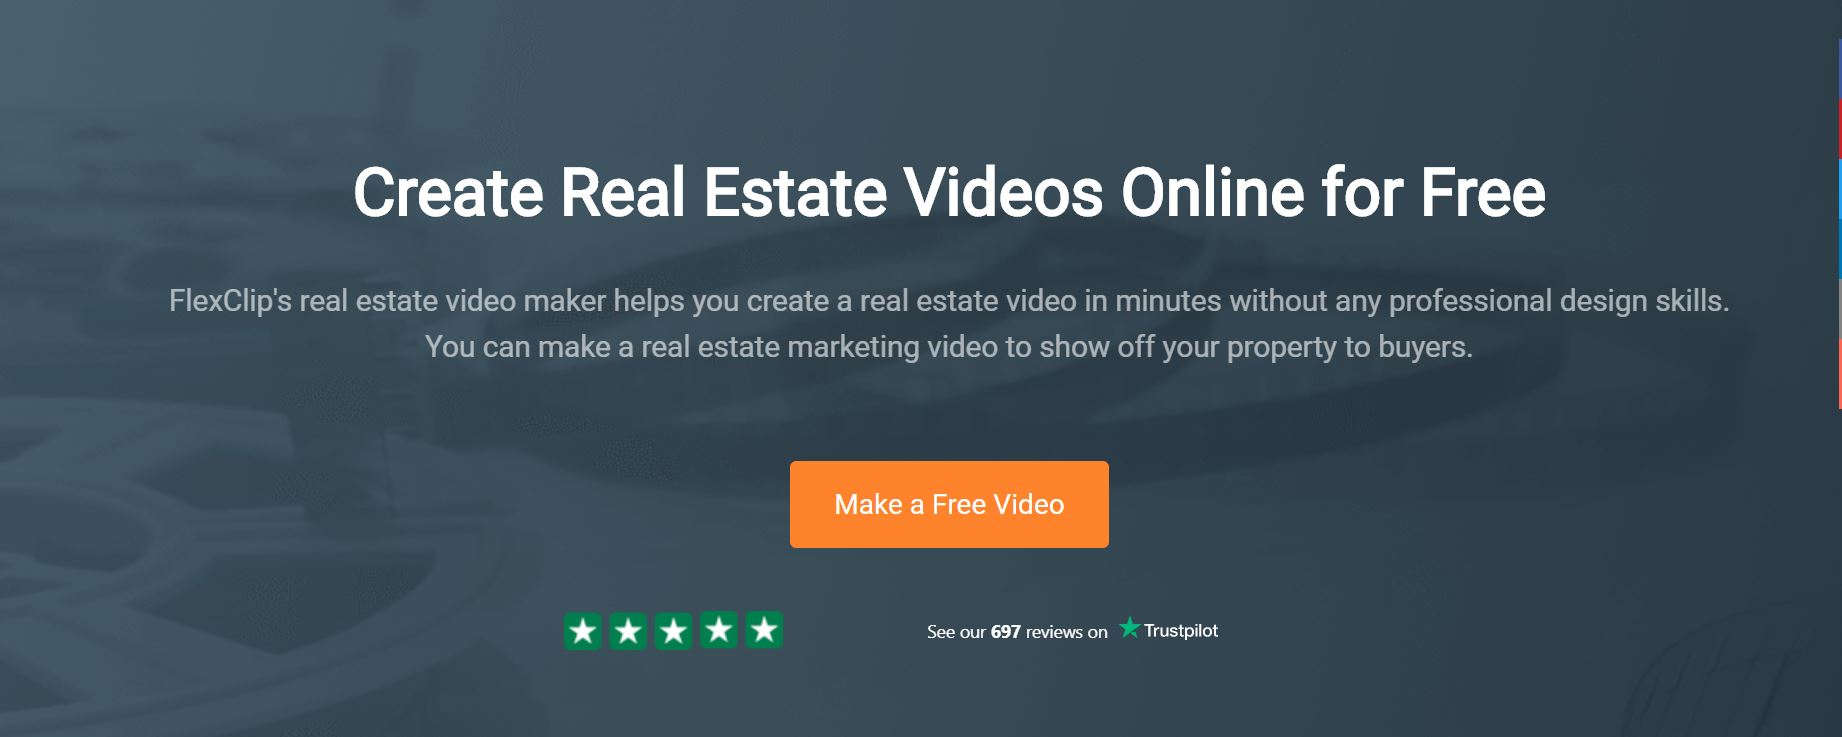 FlexClip Real Estate Video Maker